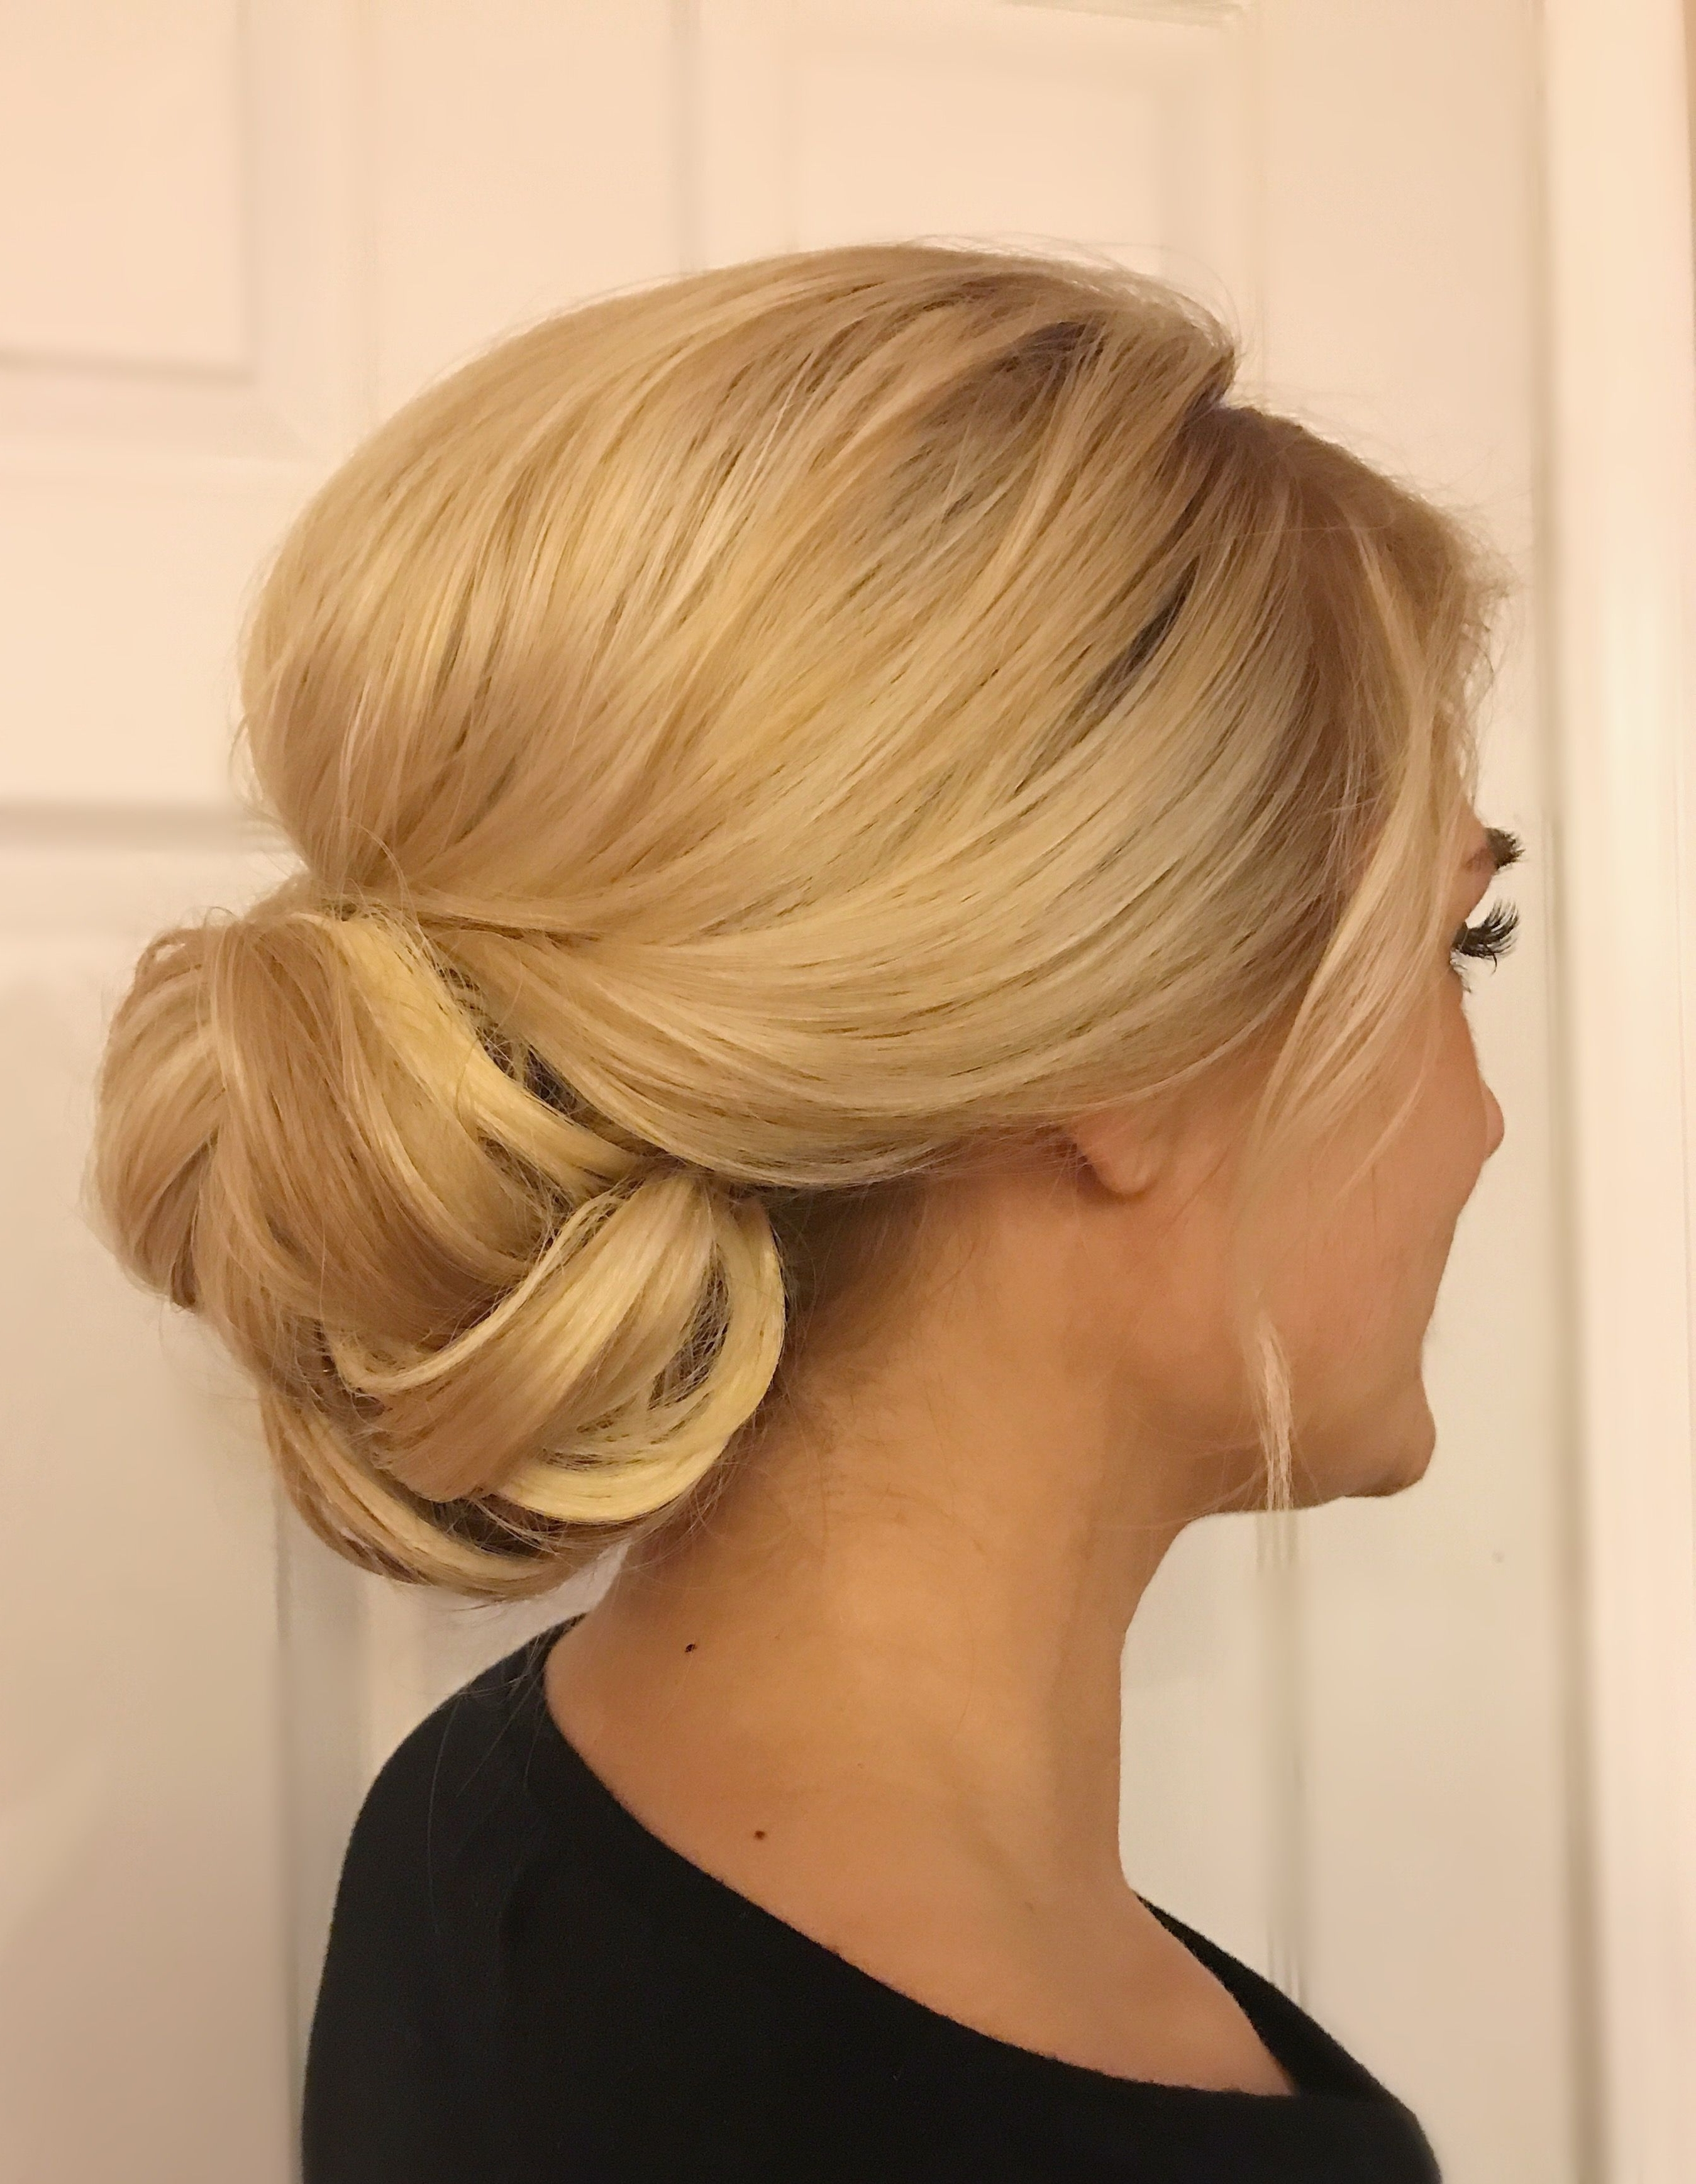 Bridal Pertaining To Fashionable Low Bun Wedding Hairstyles (View 4 of 15)